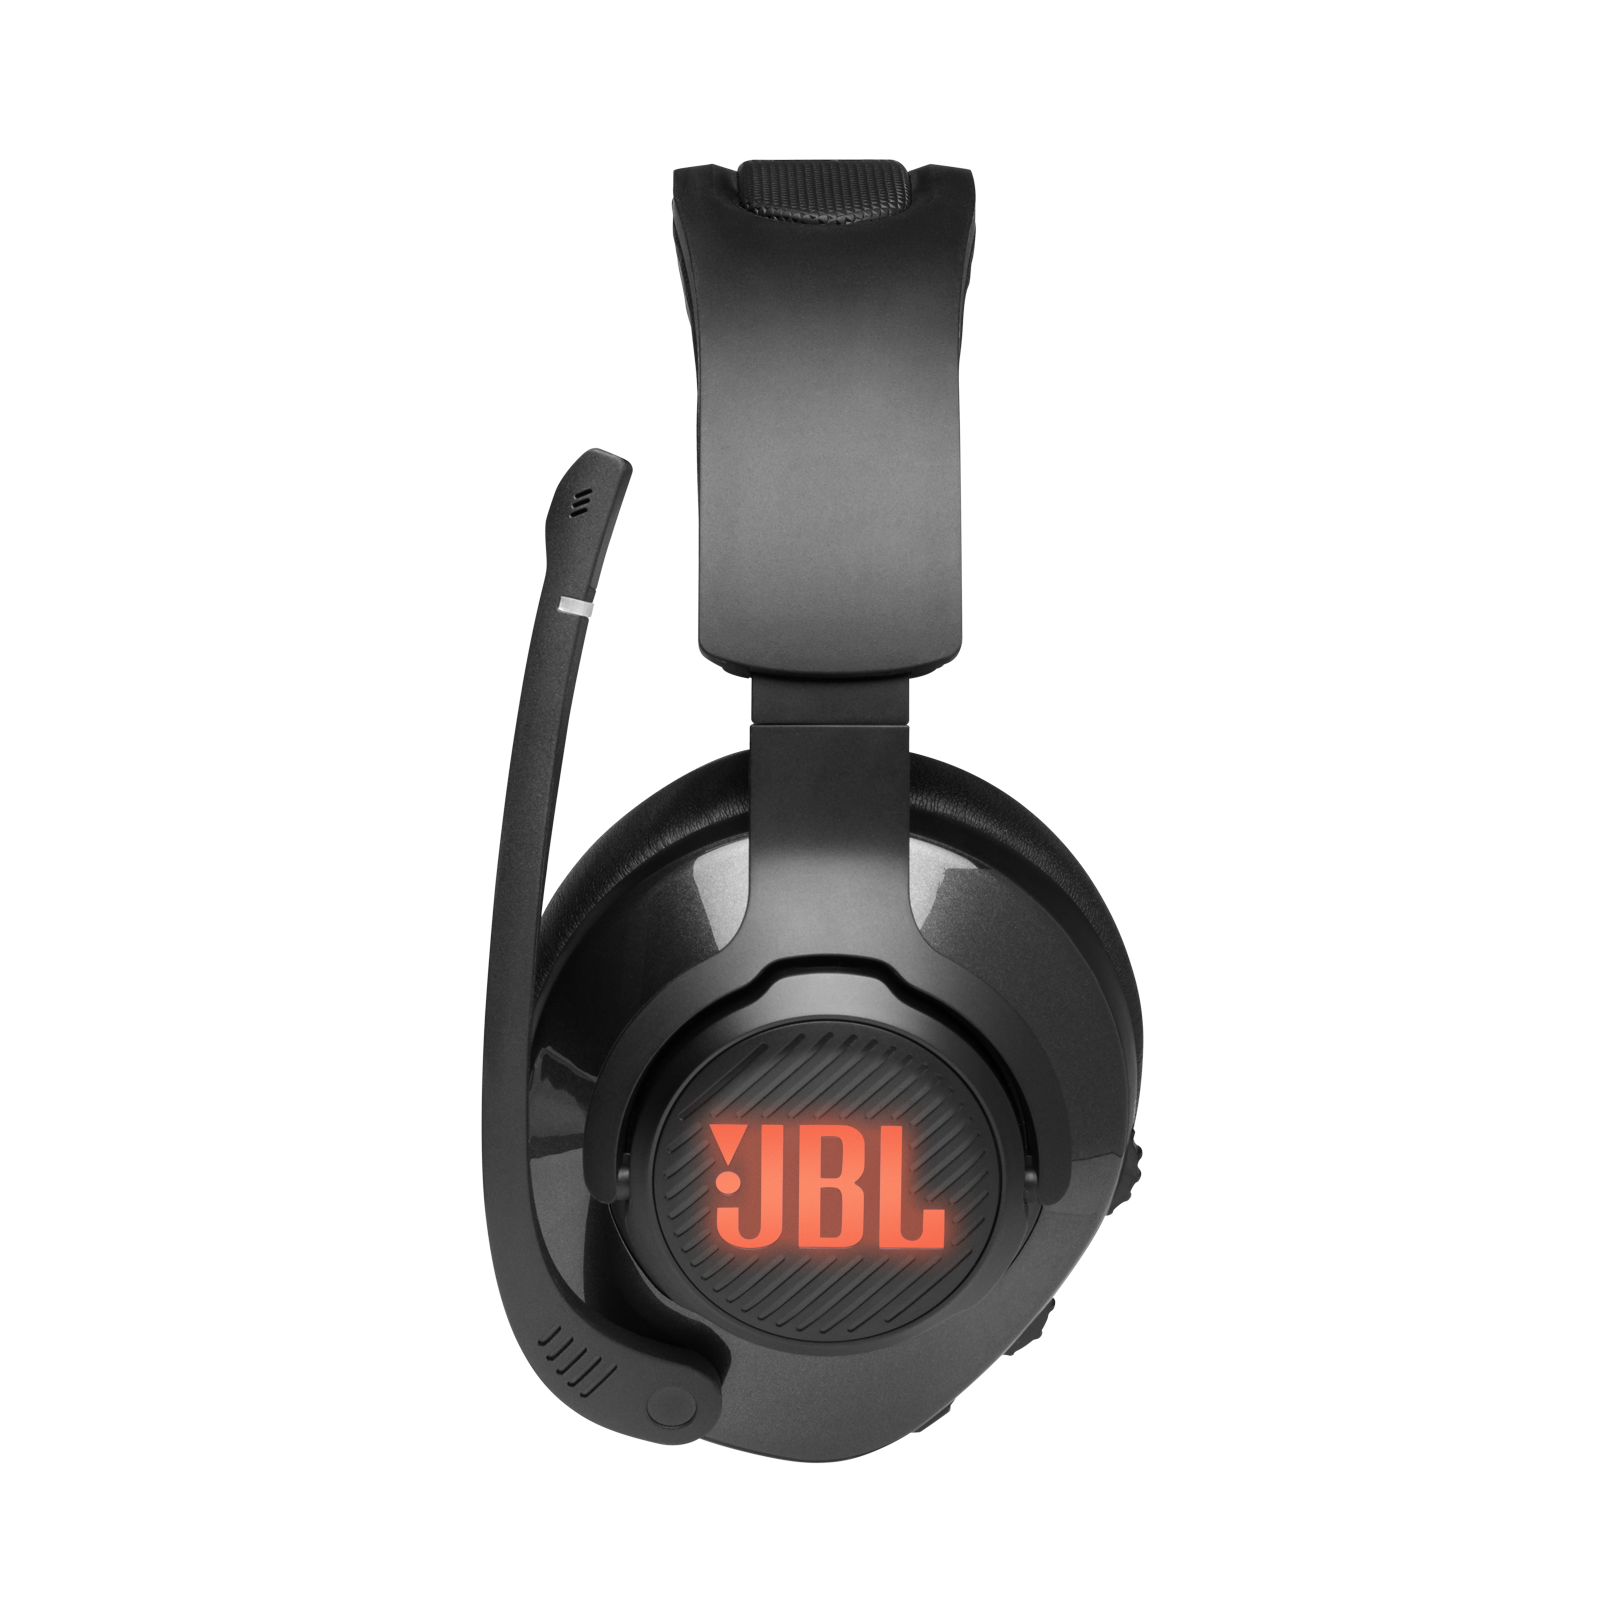 JBL Quantum 400 - Black - USB over-ear gaming headset with game-chat dial - Detailshot 6